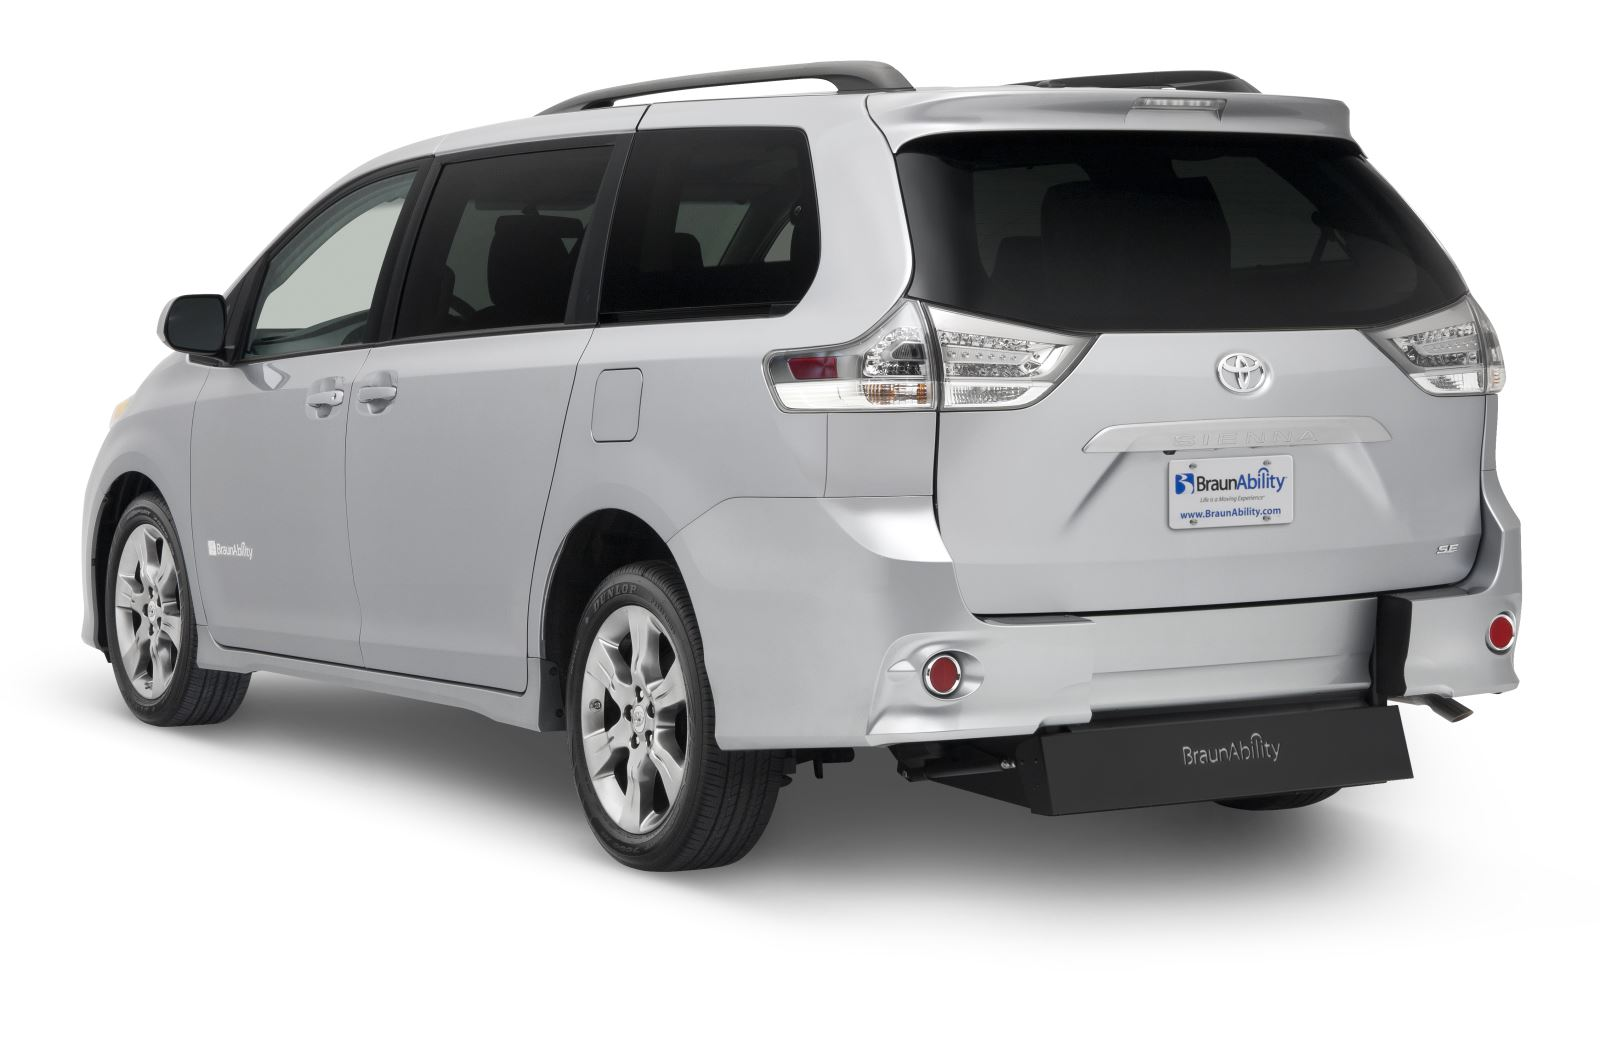 Toyota Sienna Service Manual: Input instructions